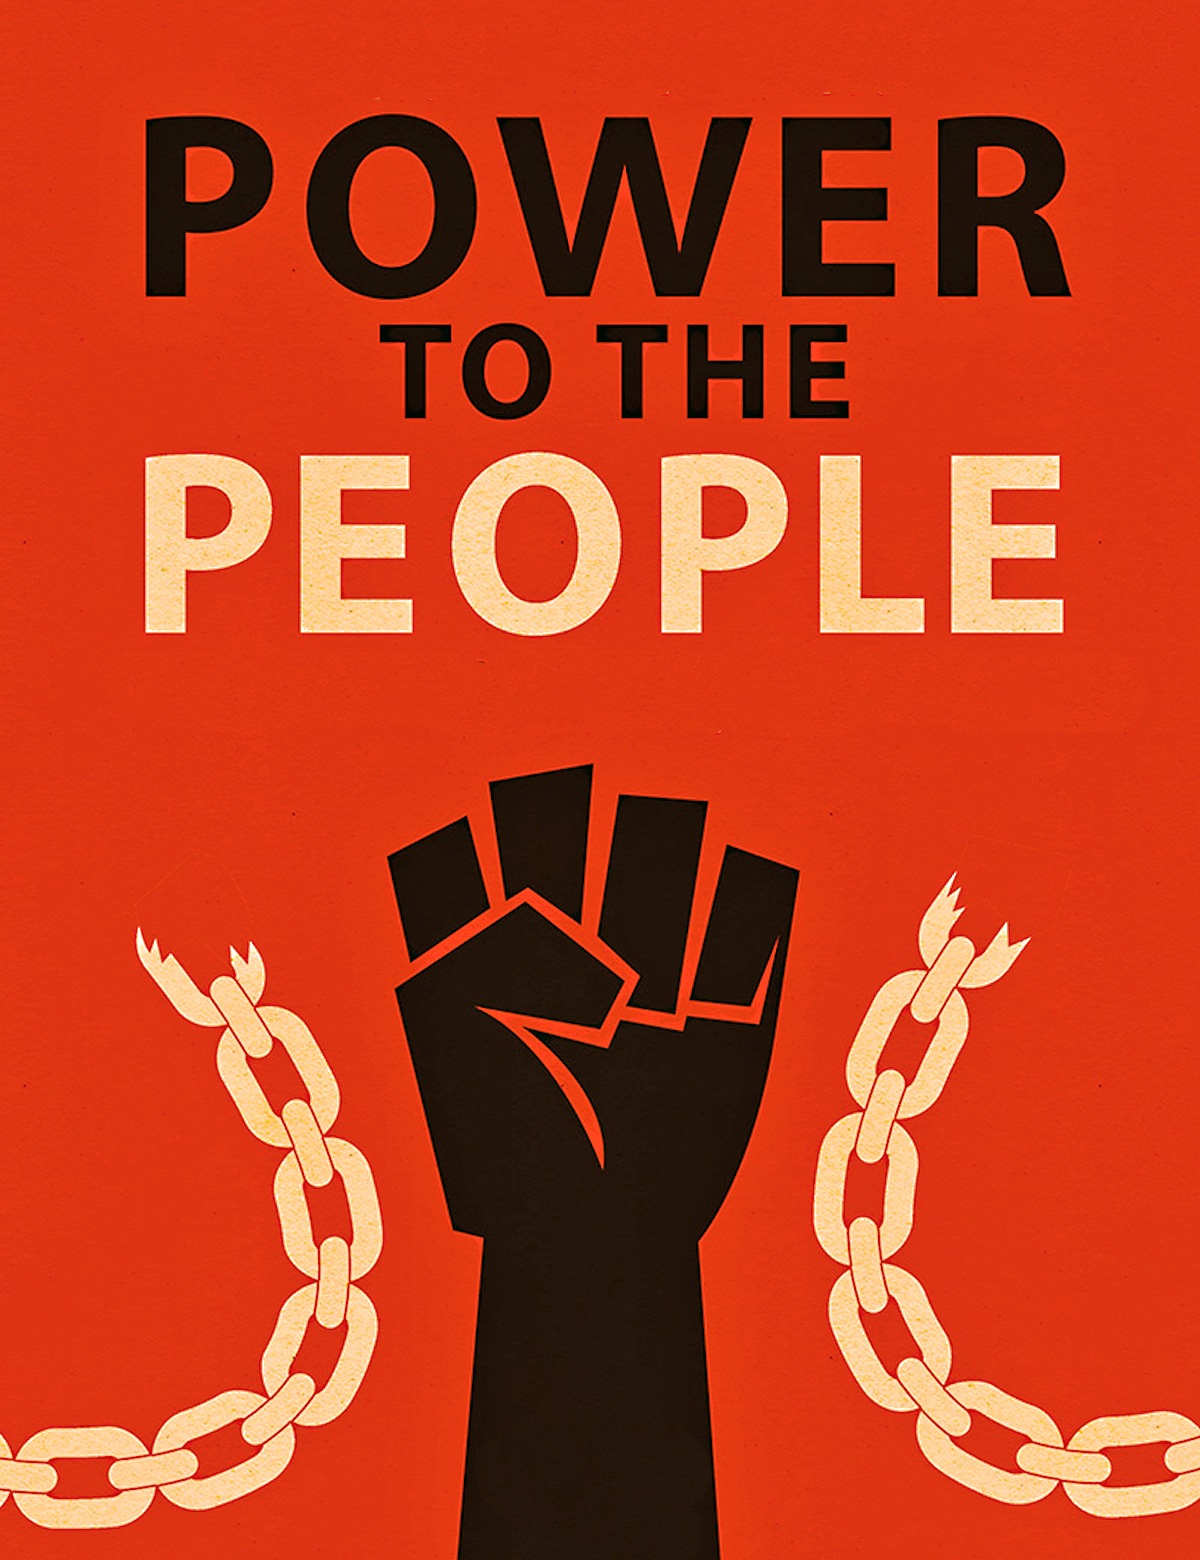 power-to-the-people-17-10-13